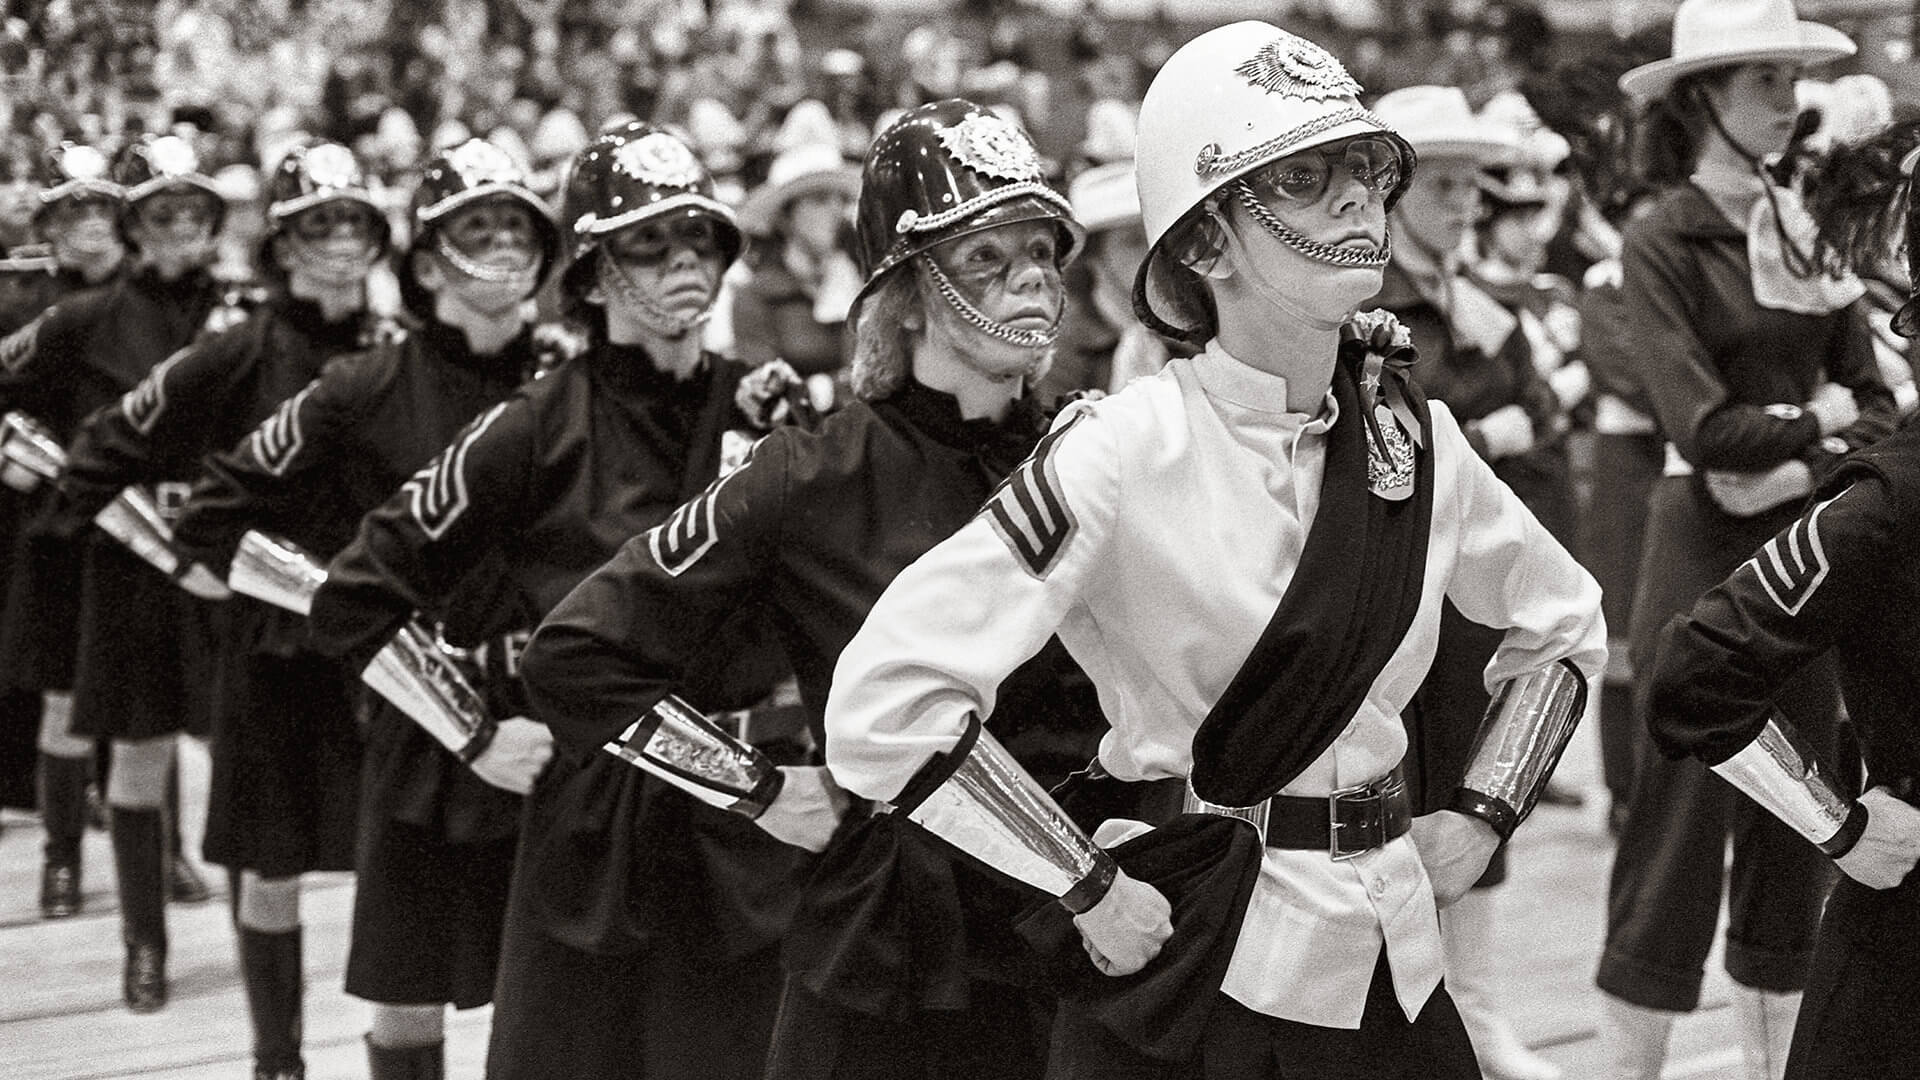 The inaugural 1978 WGI World Championship in photos